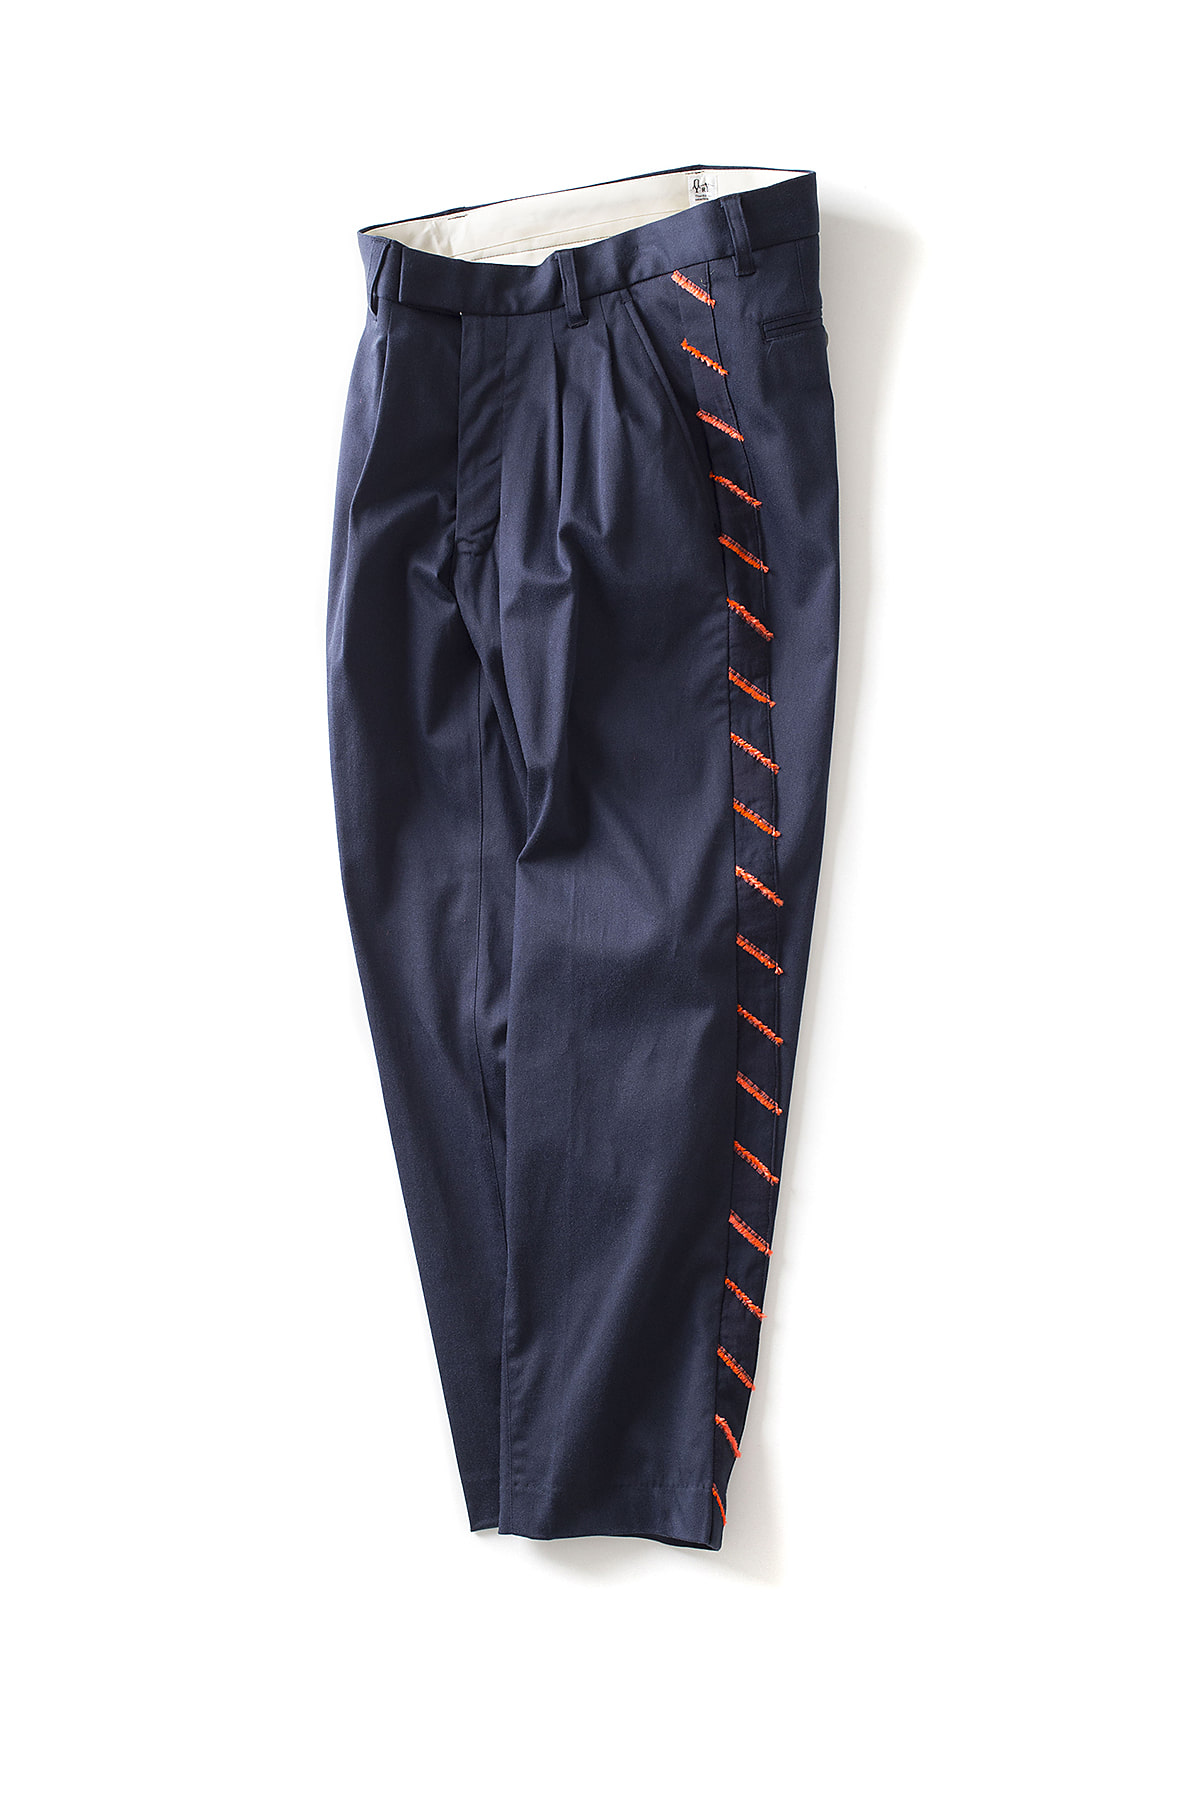 RYU : Two-tuck Tapered Pants With Fringe (Navy)